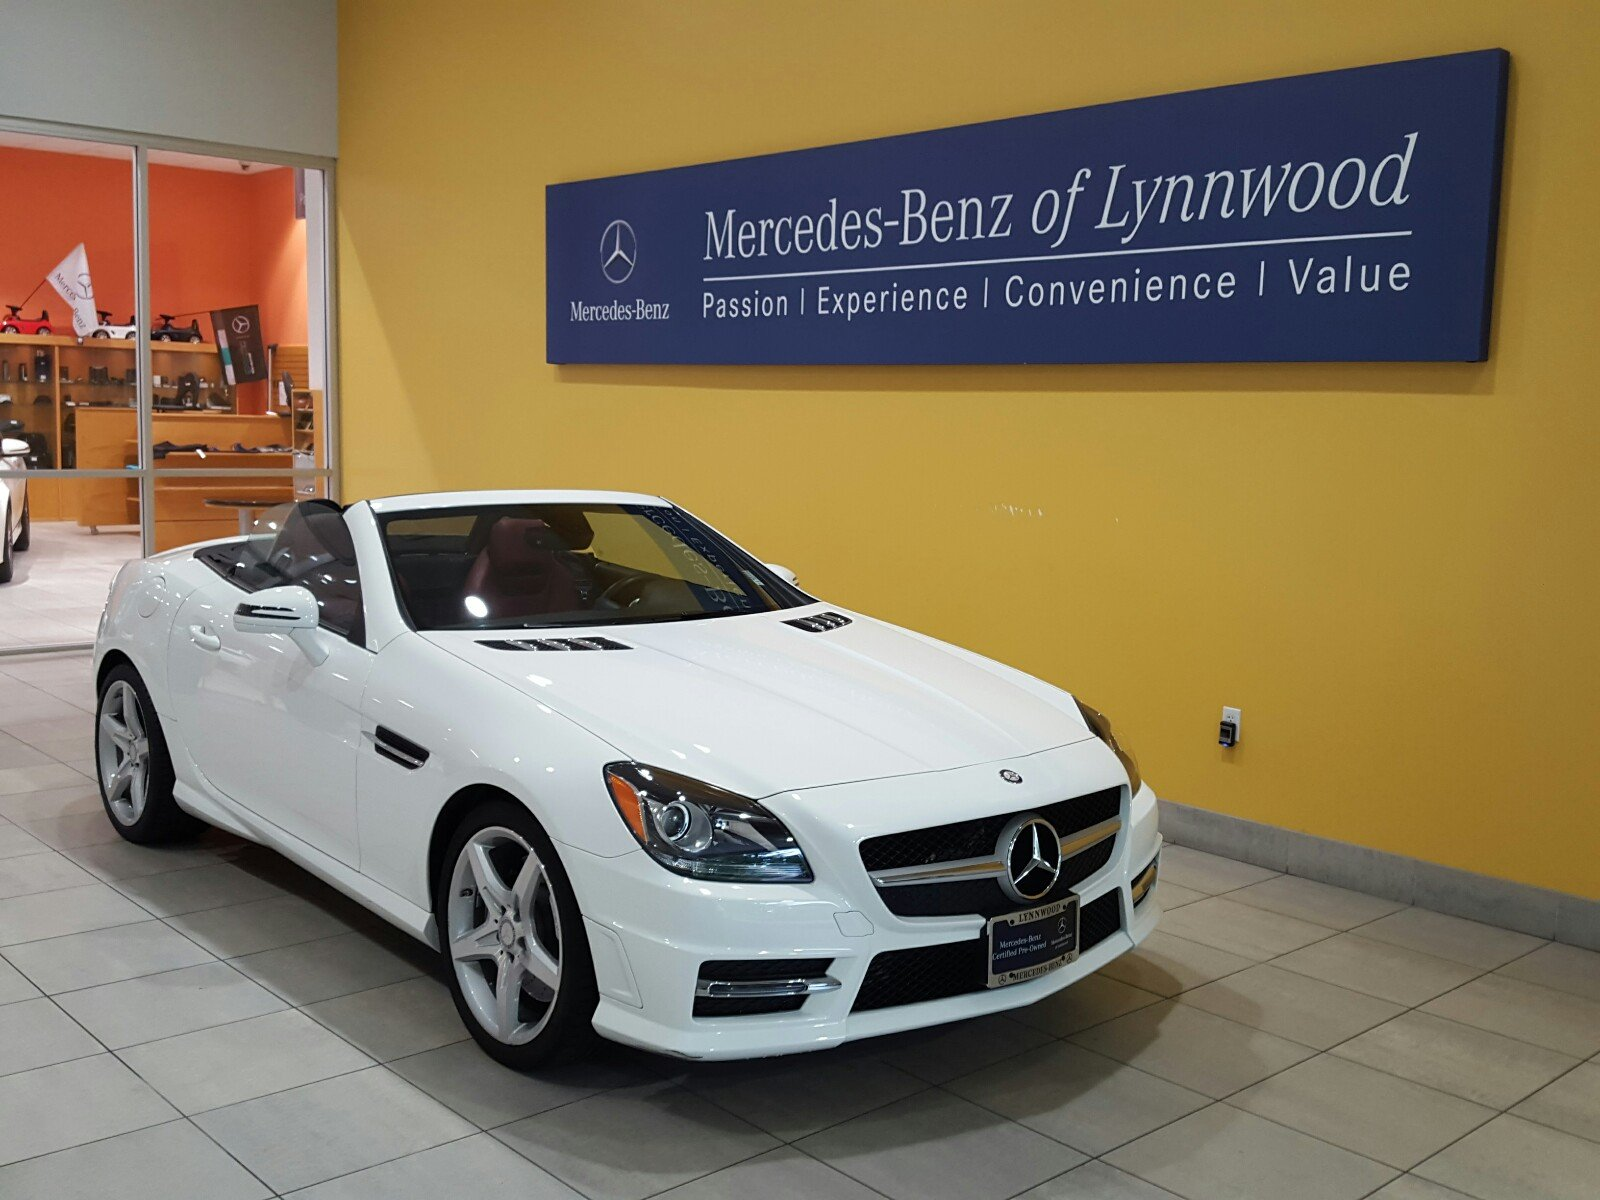 Certified pre owned 2015 mercedes benz slk slk 250 for Mercedes benz cpo